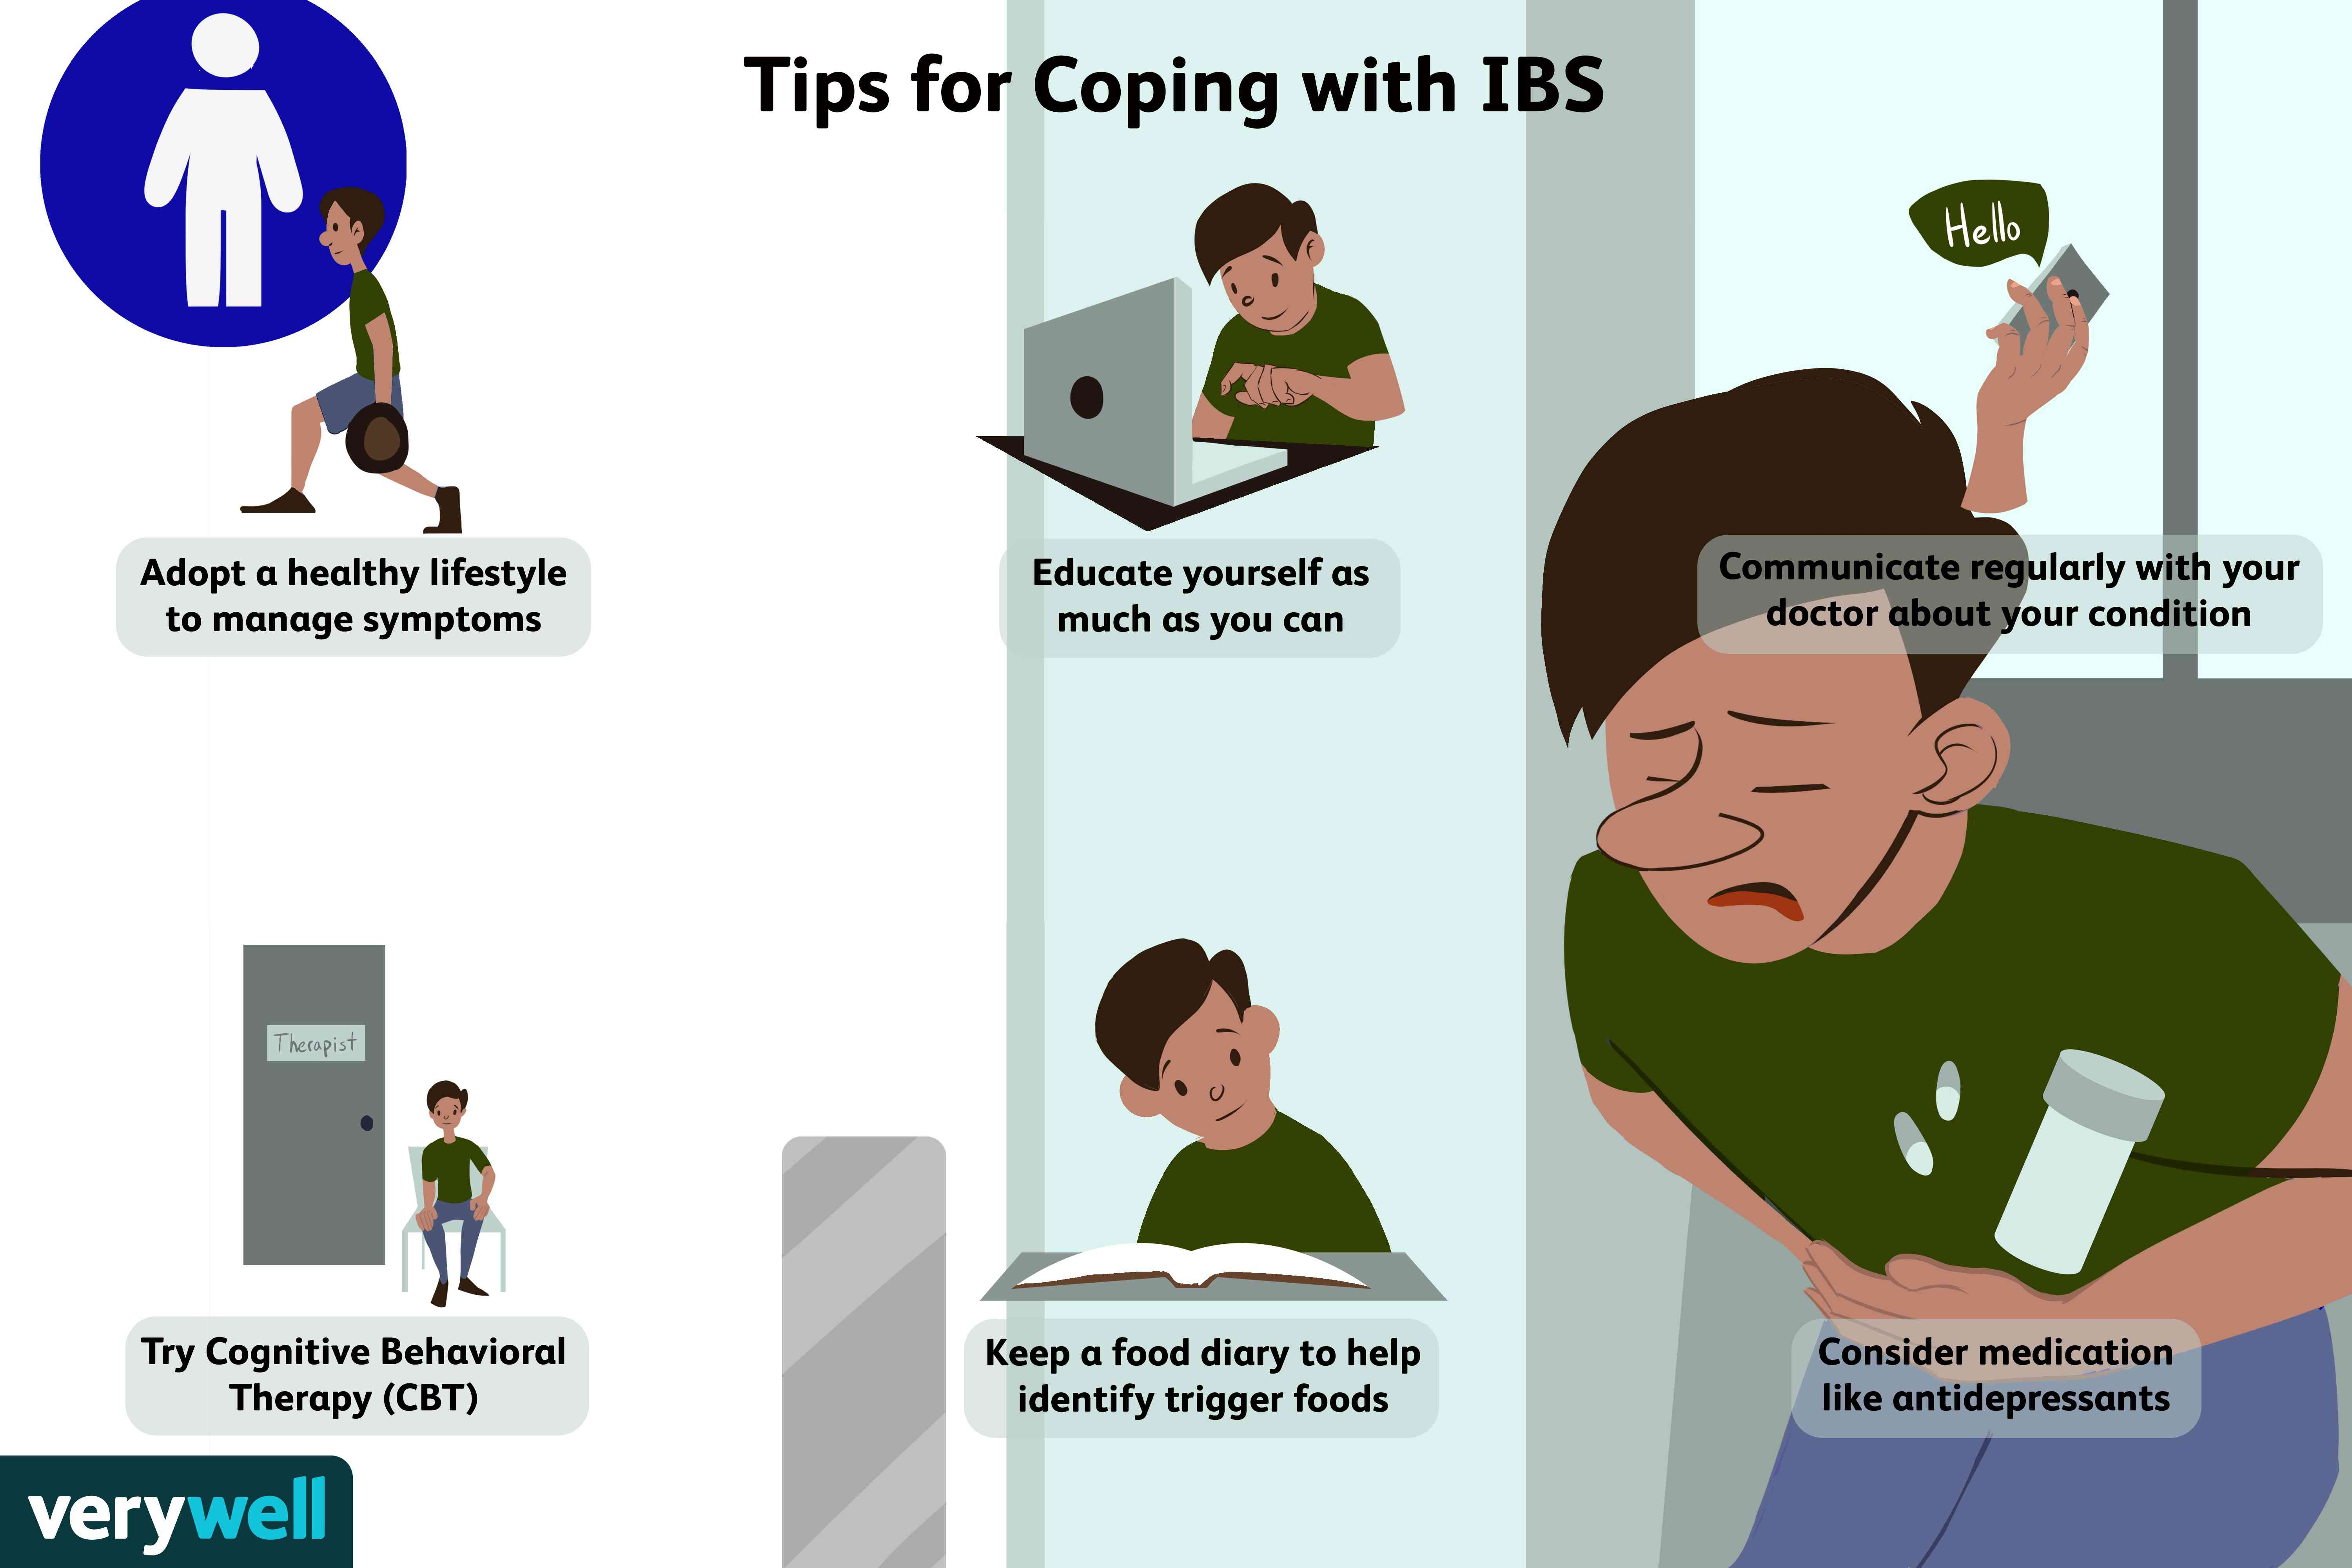 tips for coping with ibs